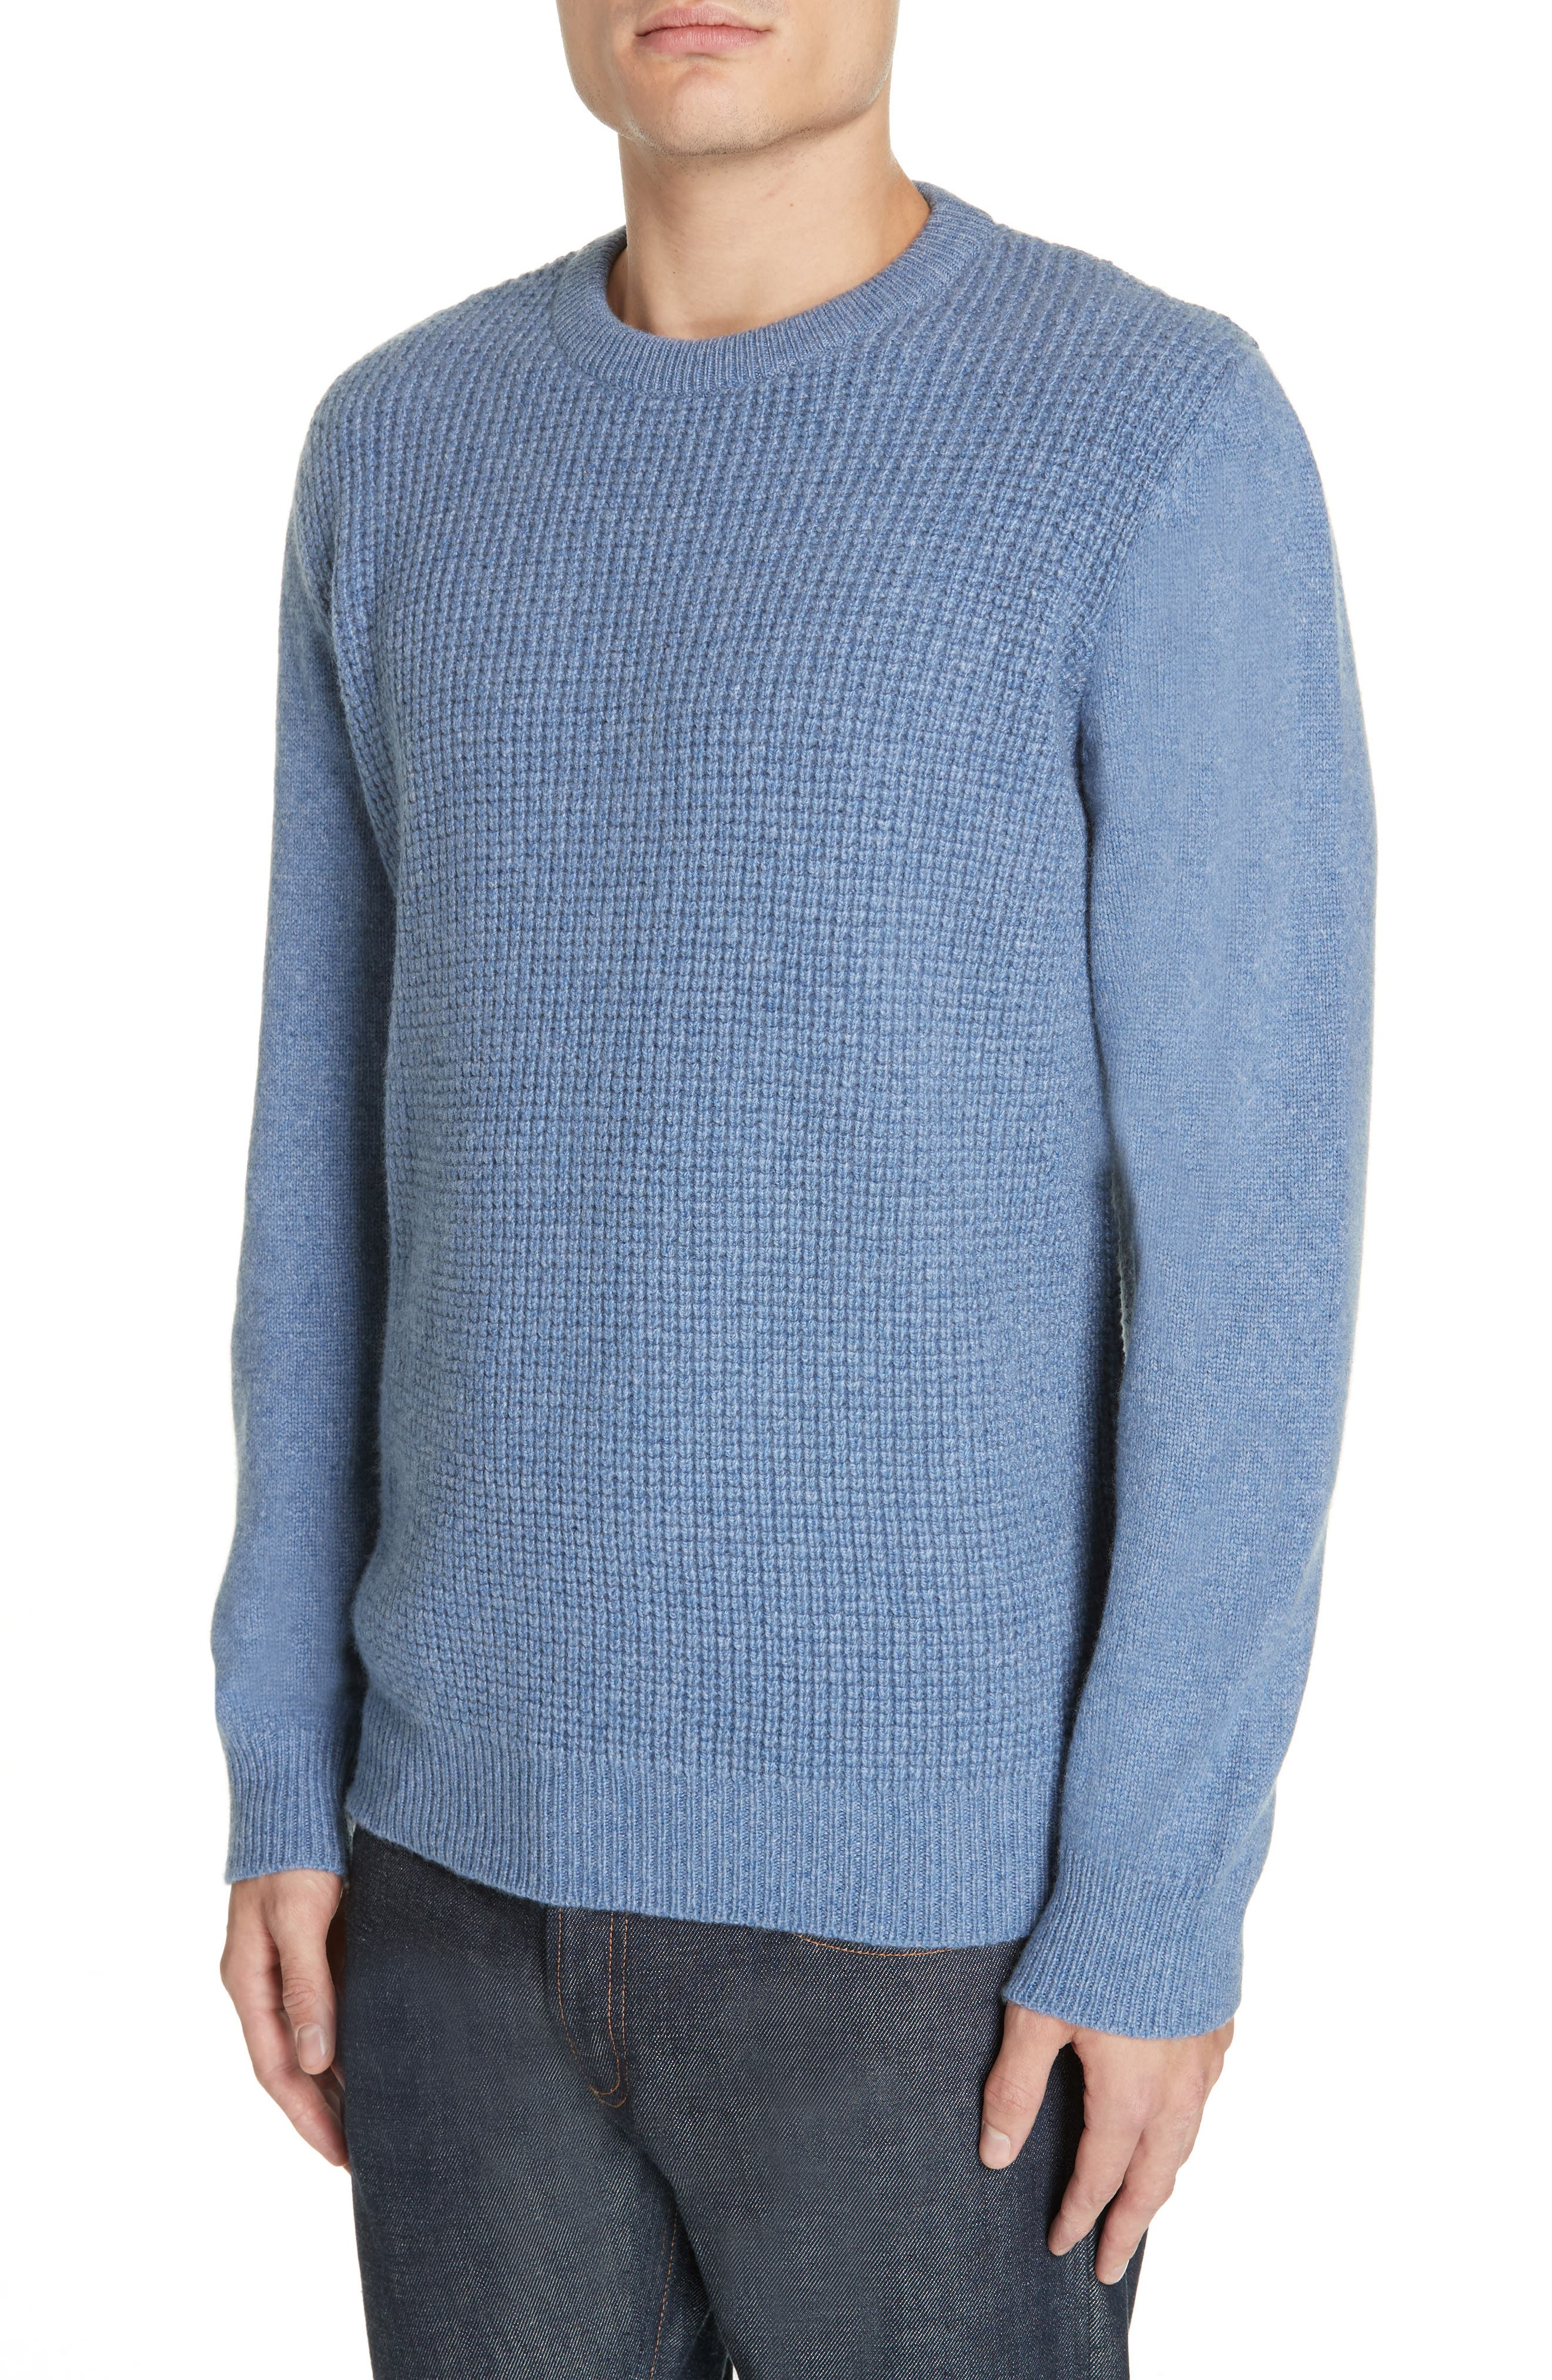 Waffle Knit Cashmere Crewneck Sweater,                             Alternate thumbnail 4, color,                             LIGHT BLUE